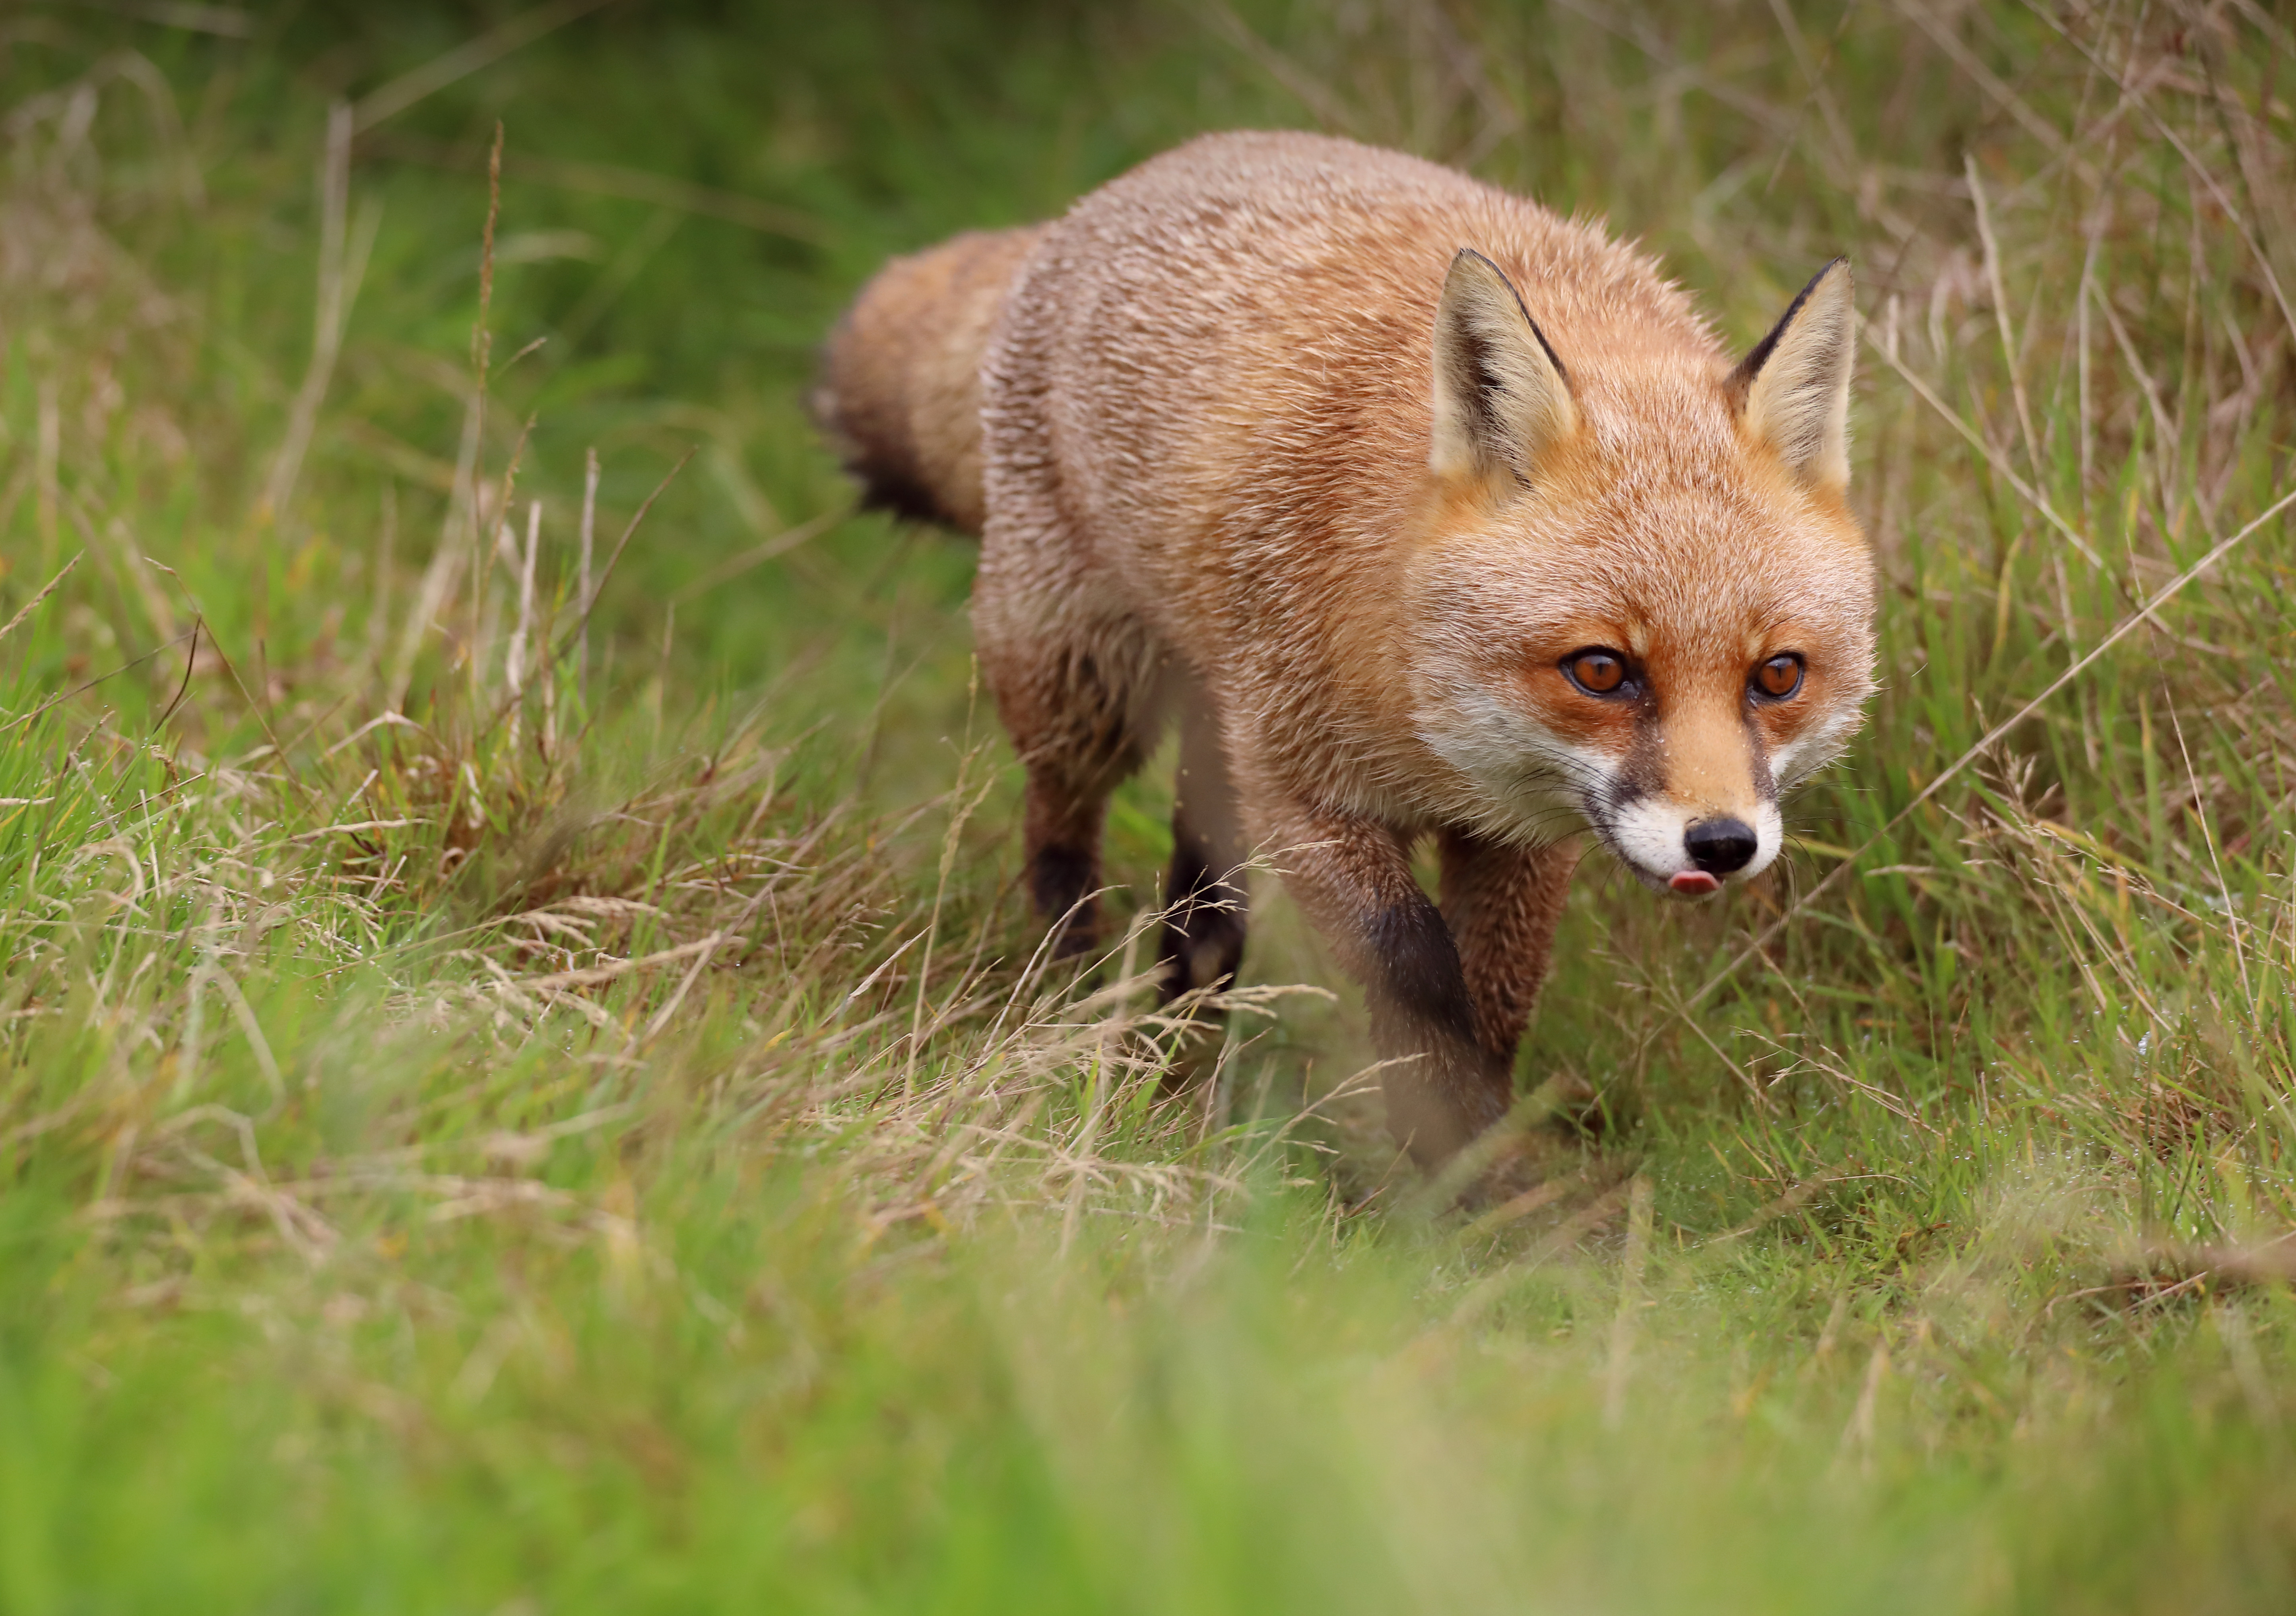 130182 download wallpaper Animals, Fox, Protruding Tongue, Tongue Stuck Out, Redhead, Predator screensavers and pictures for free